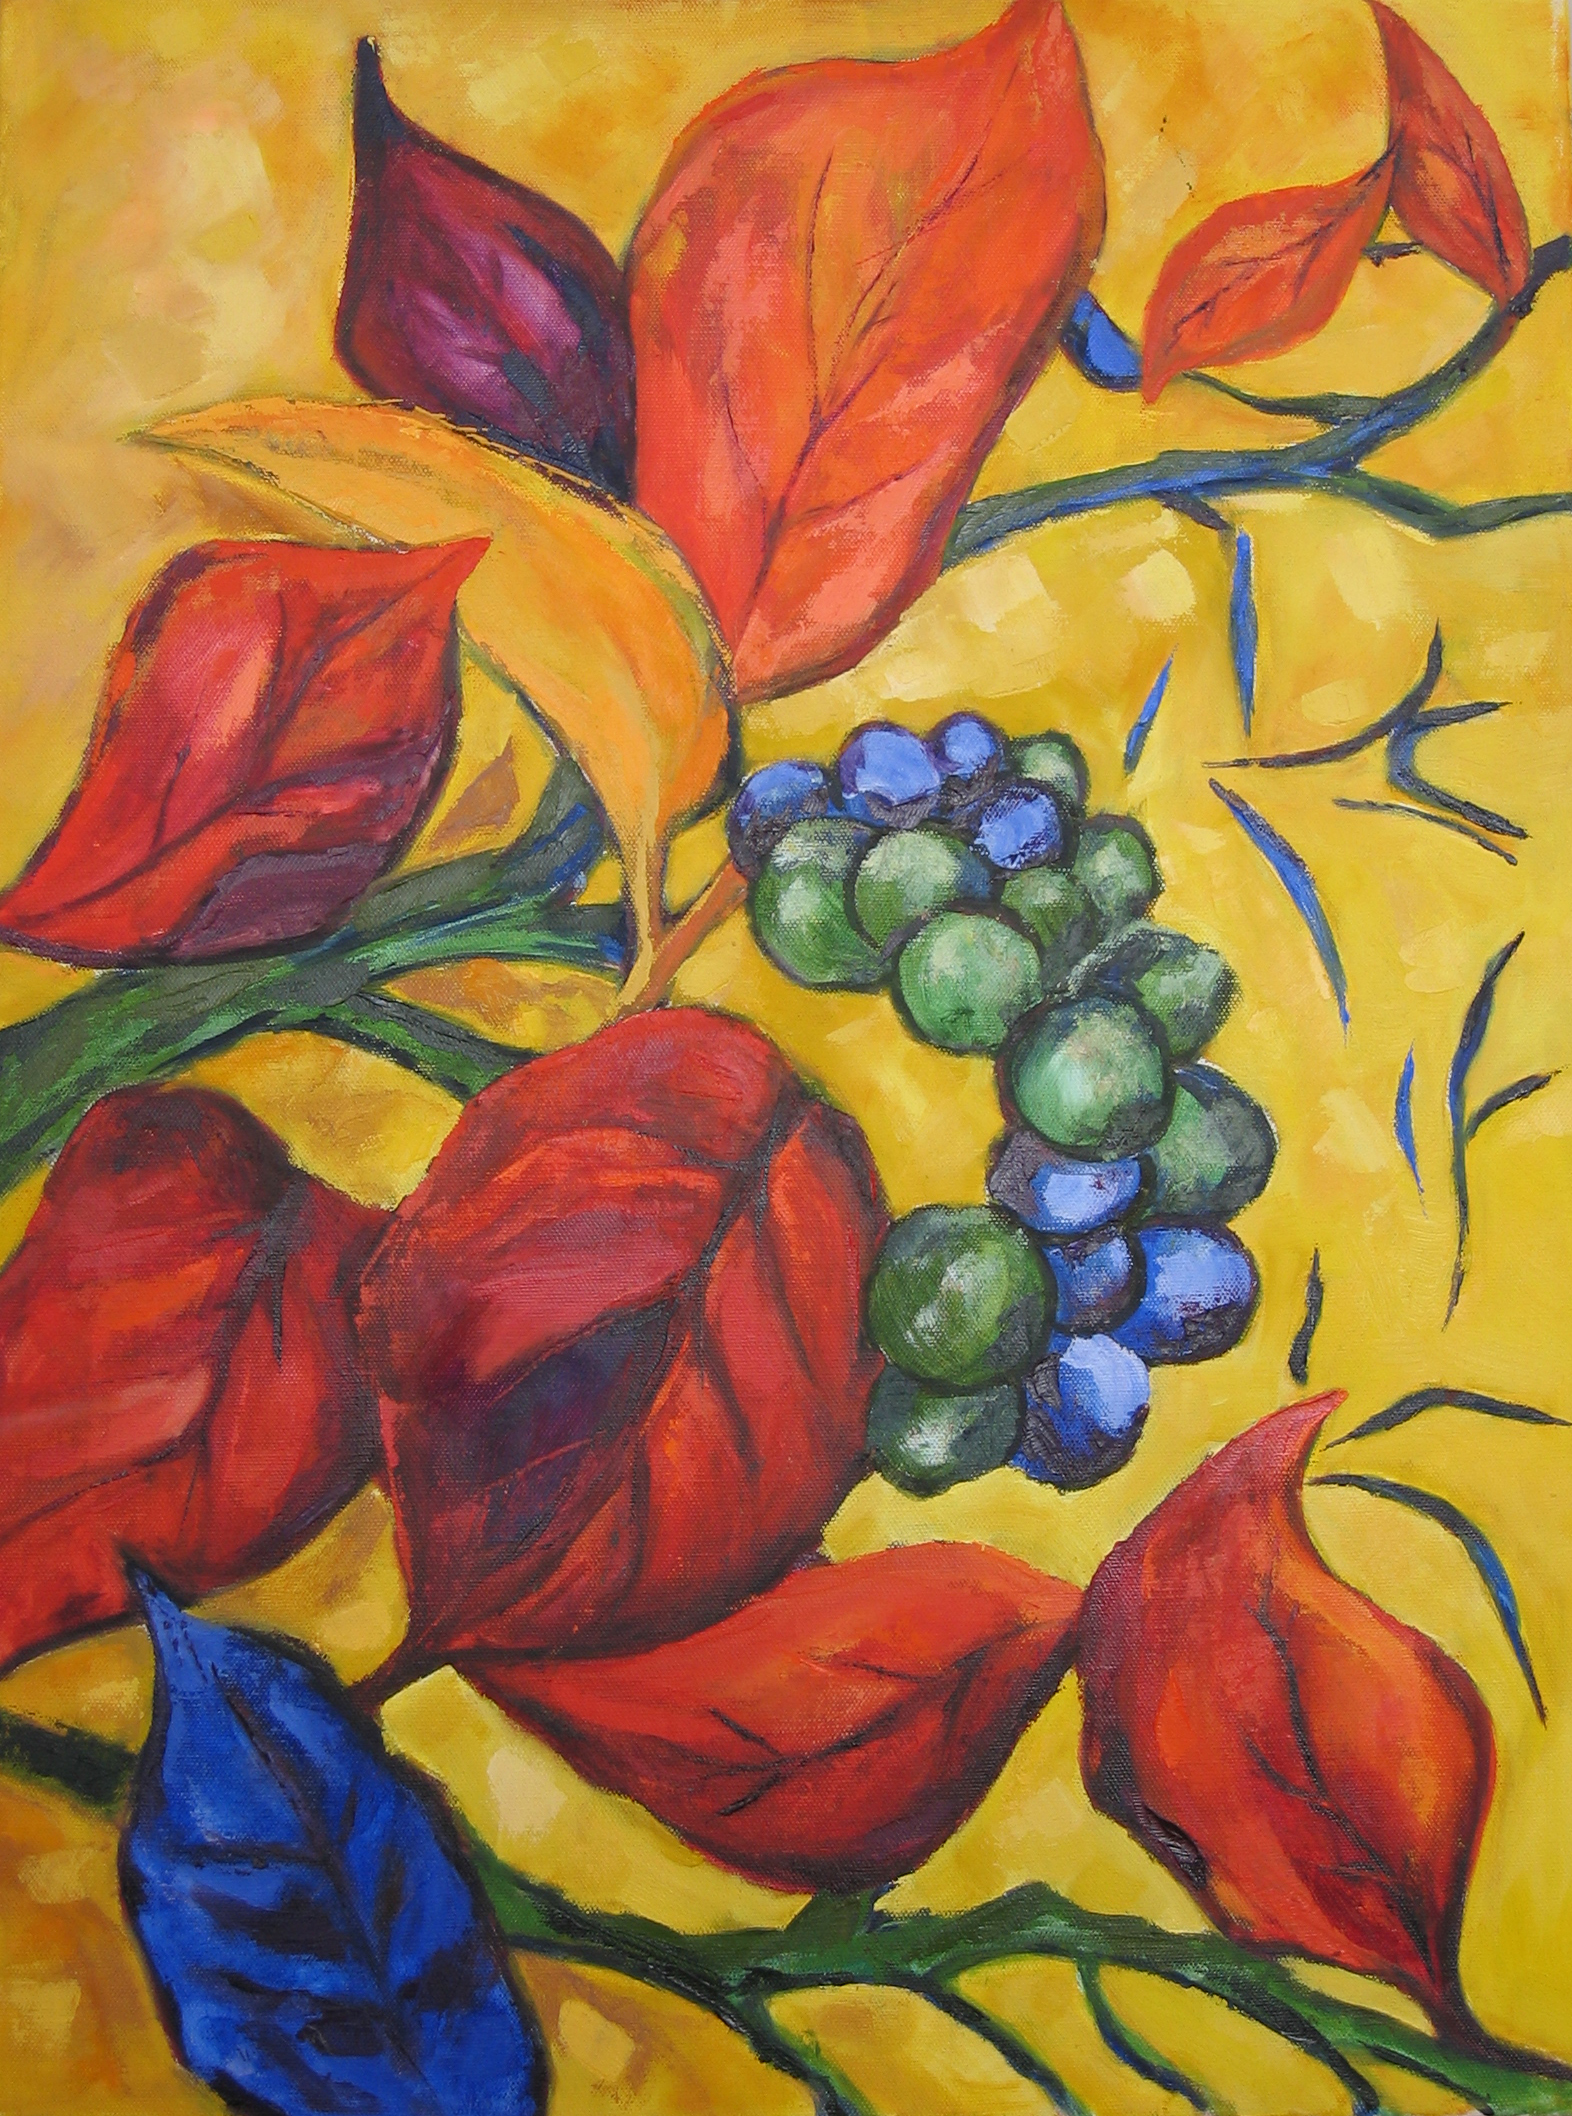 autumn-leaves-oil-on-canvas-46cm-x-60cm